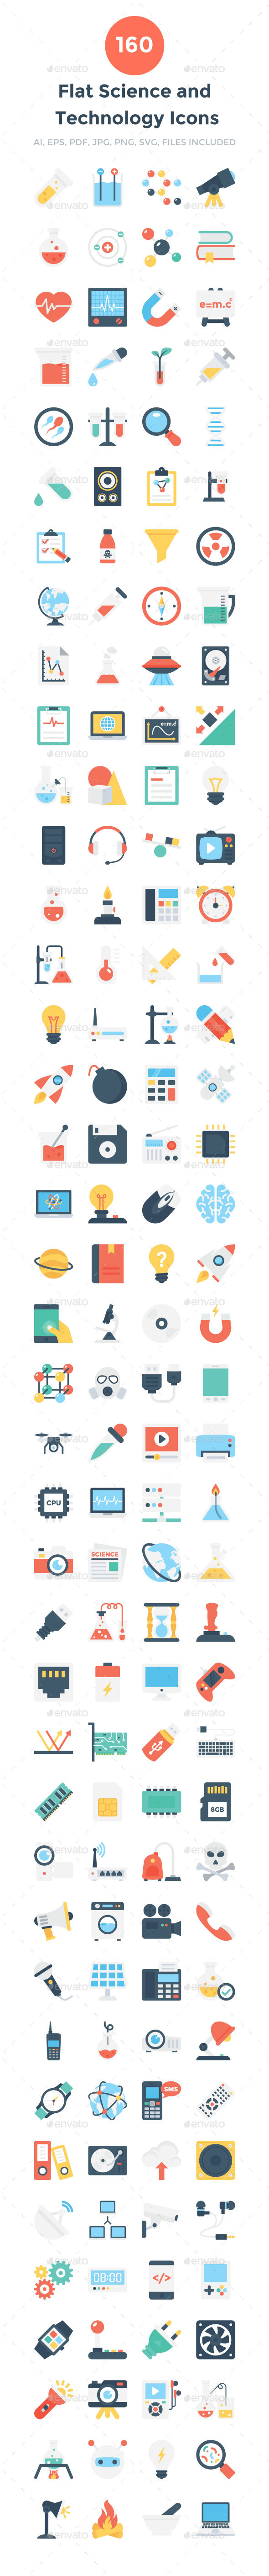 160 Flat Science and Technology Icon - Icons